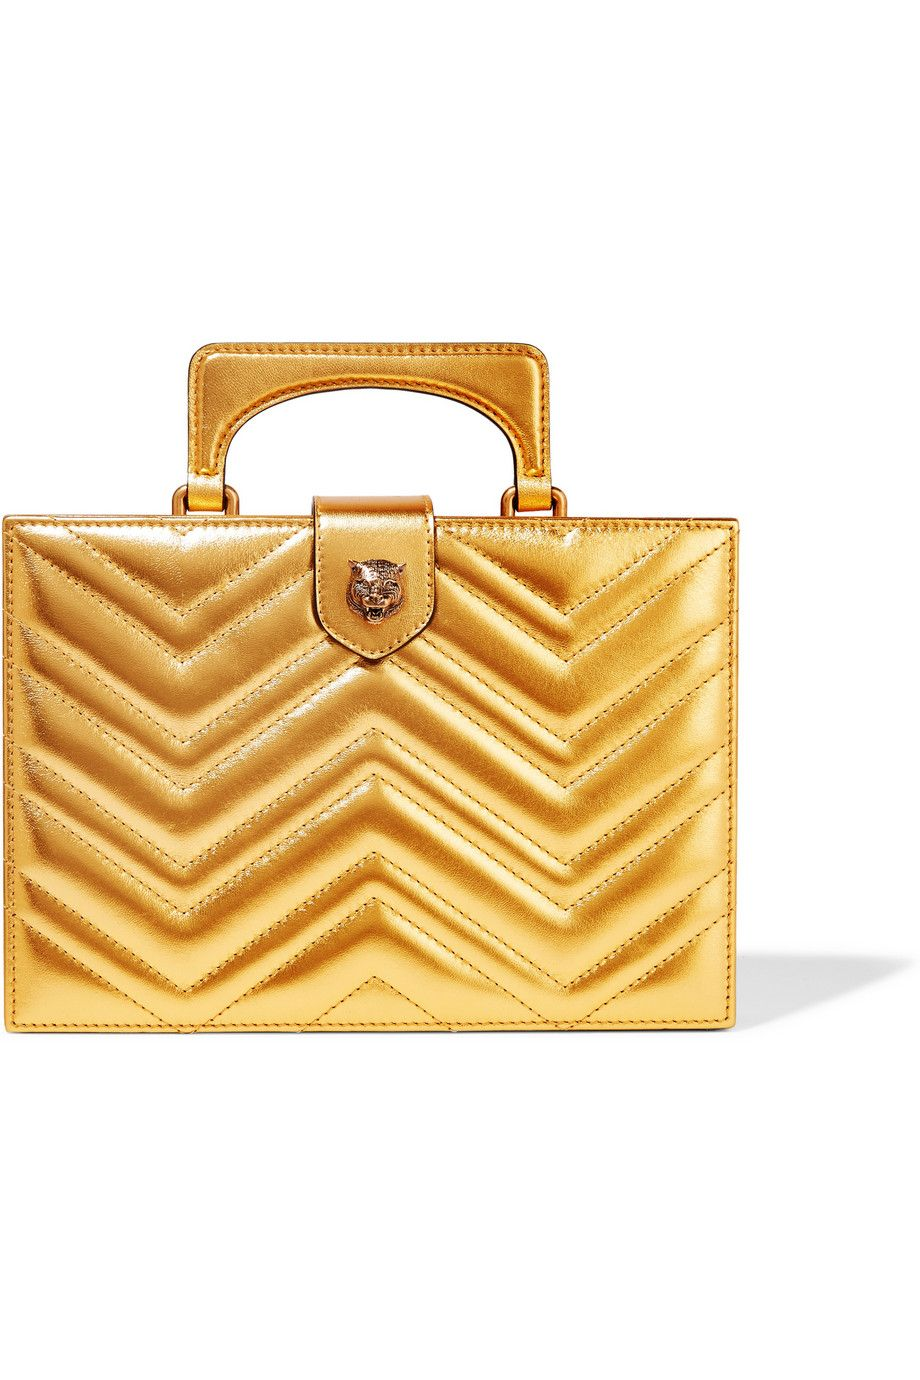 c5f608feadf GUCCI Broadway Box quilted metallic leather clutch Gold leather (Lamb)  Magnetic fastening along top